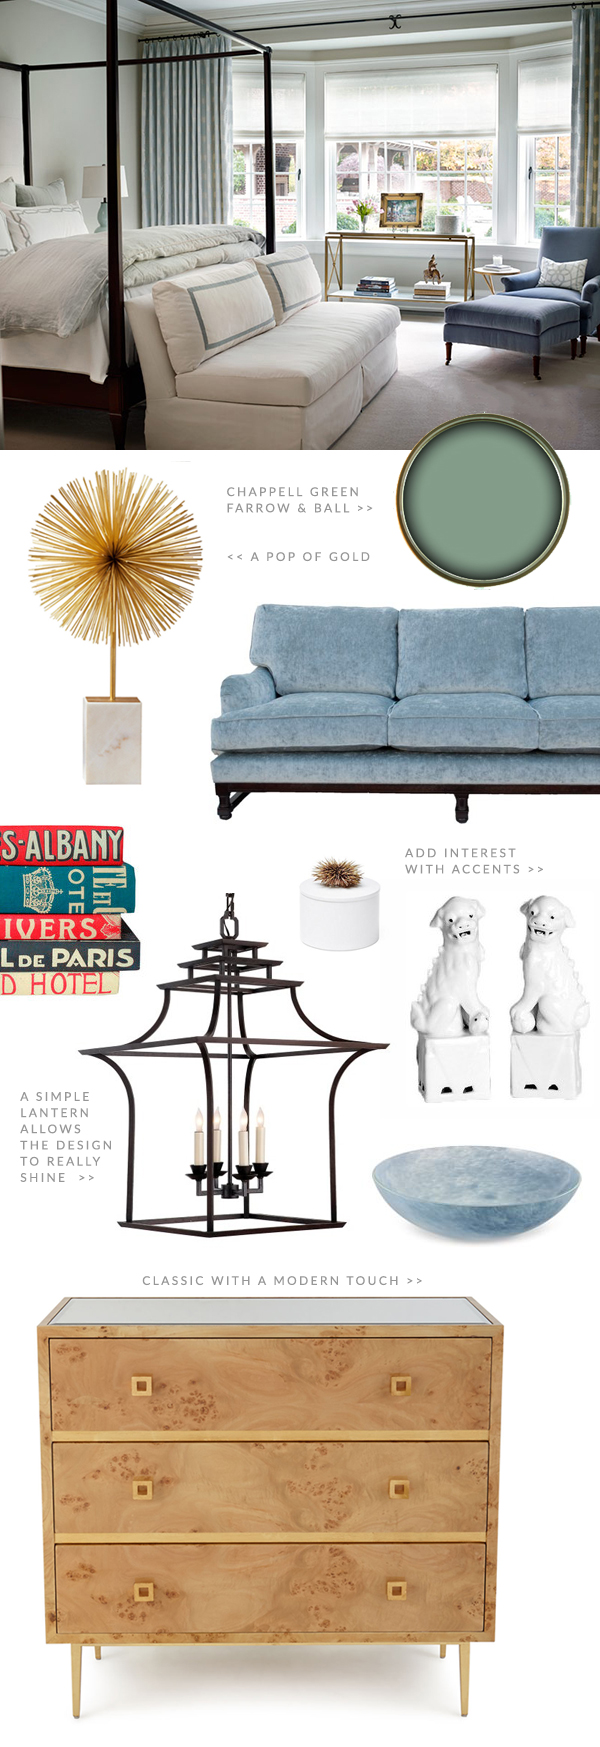 Classic, Yet Modern Home Inspiration + Chappell Green paint color